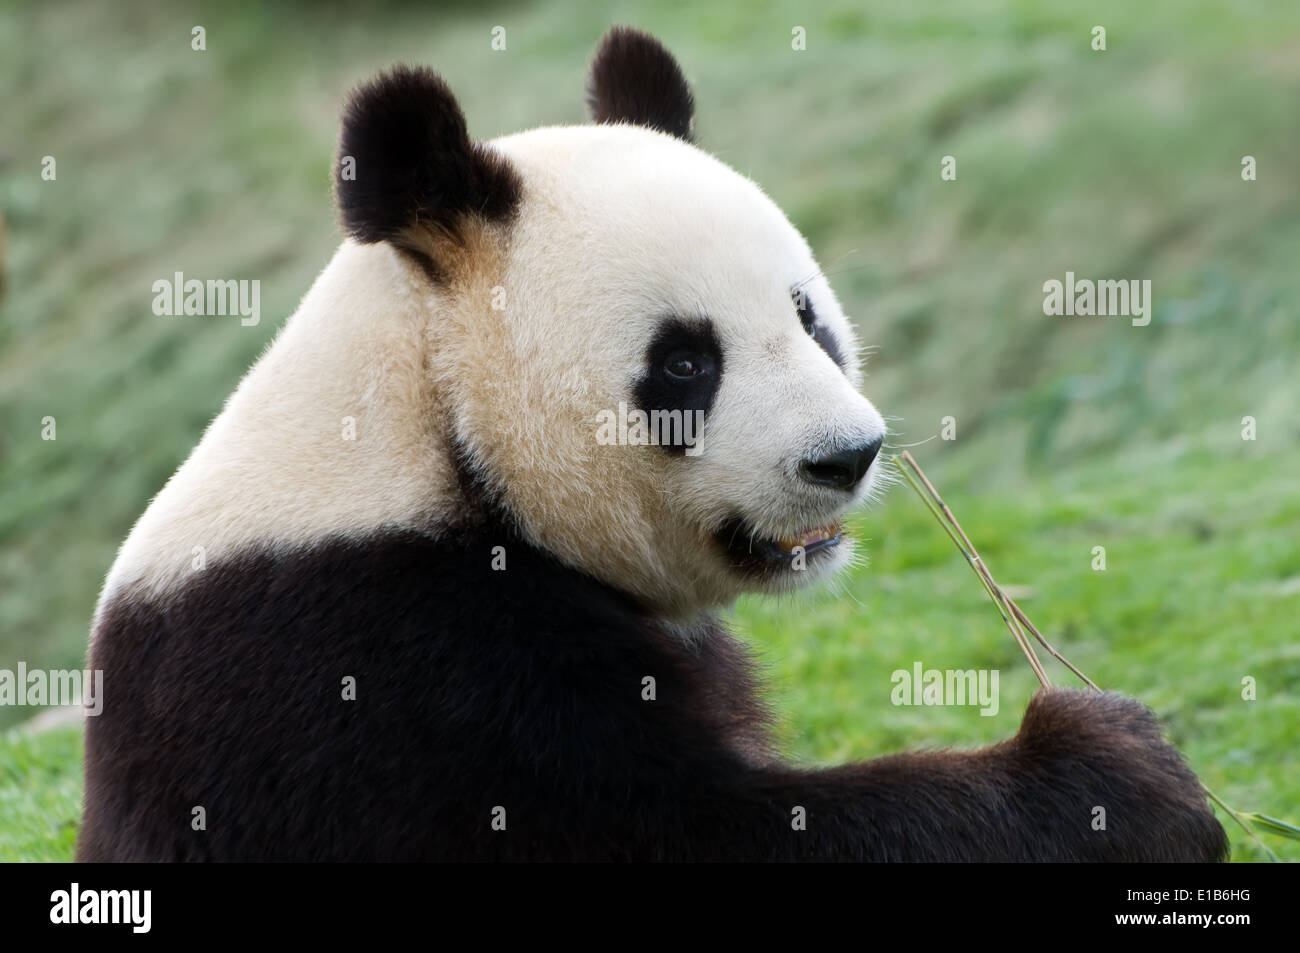 rare adult big panda eating bamboo Stock Photo